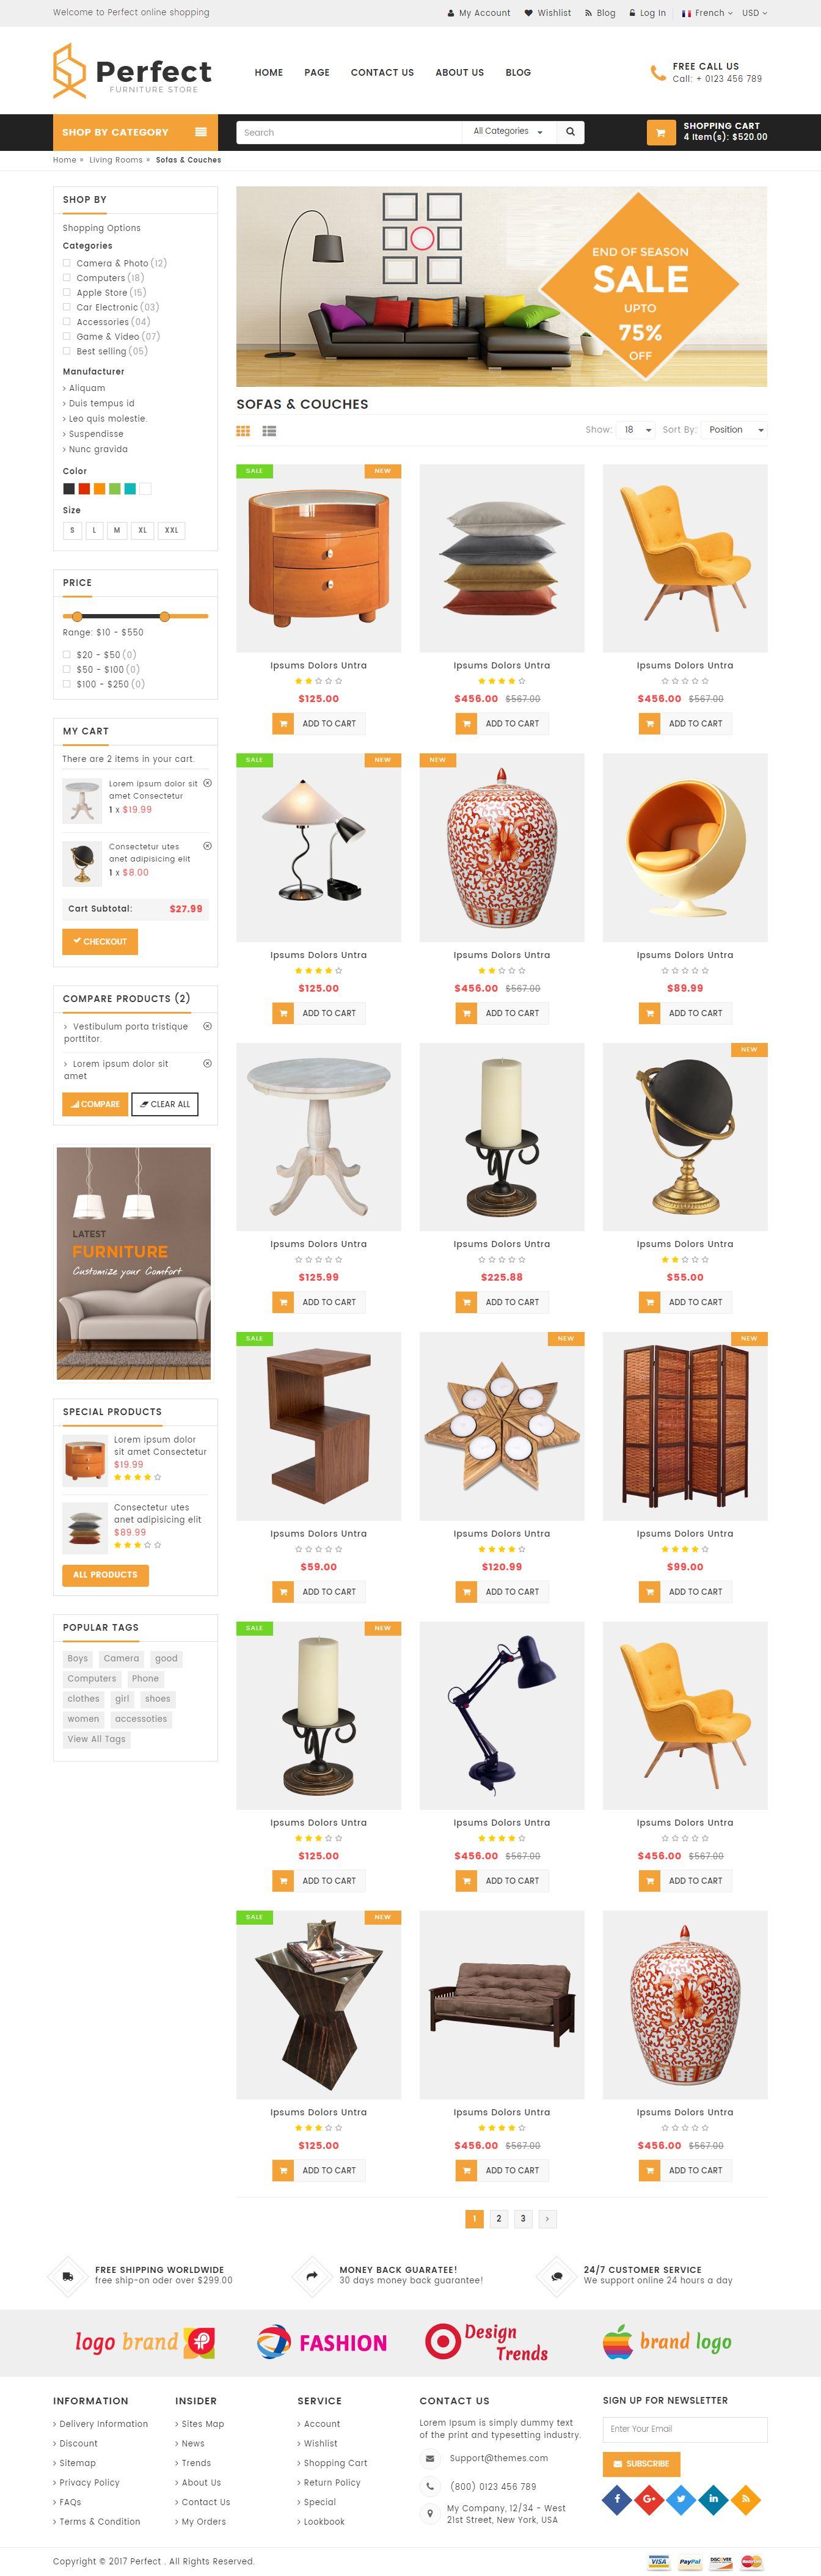 Perfect - Responsive Ecommerce HTML5 Template Screenshot 2